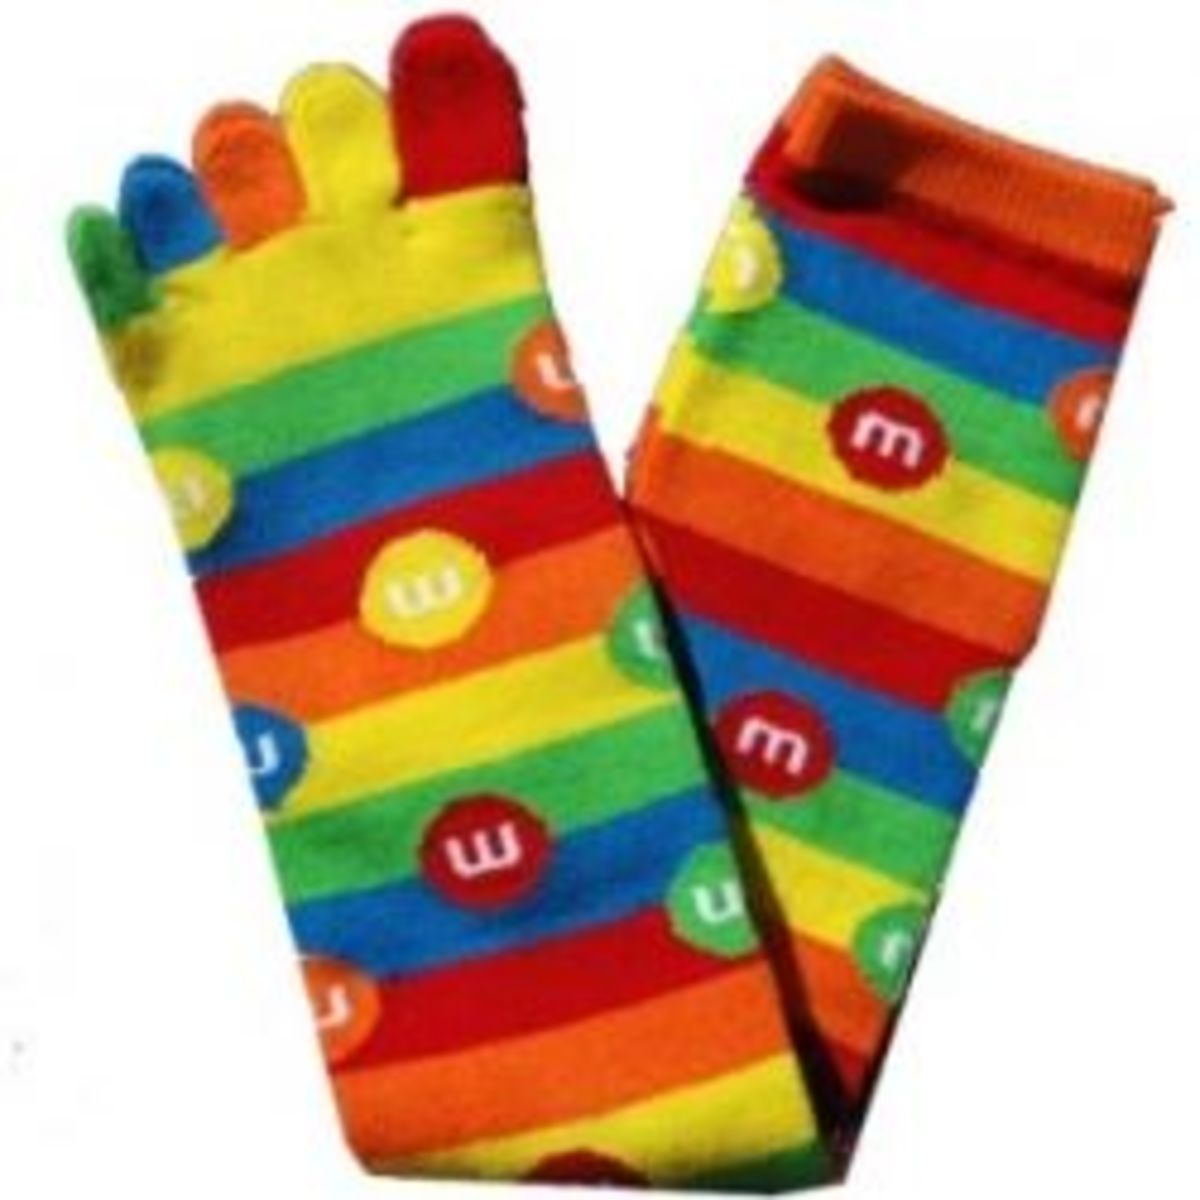 toe-socks-for-geeky-gifts